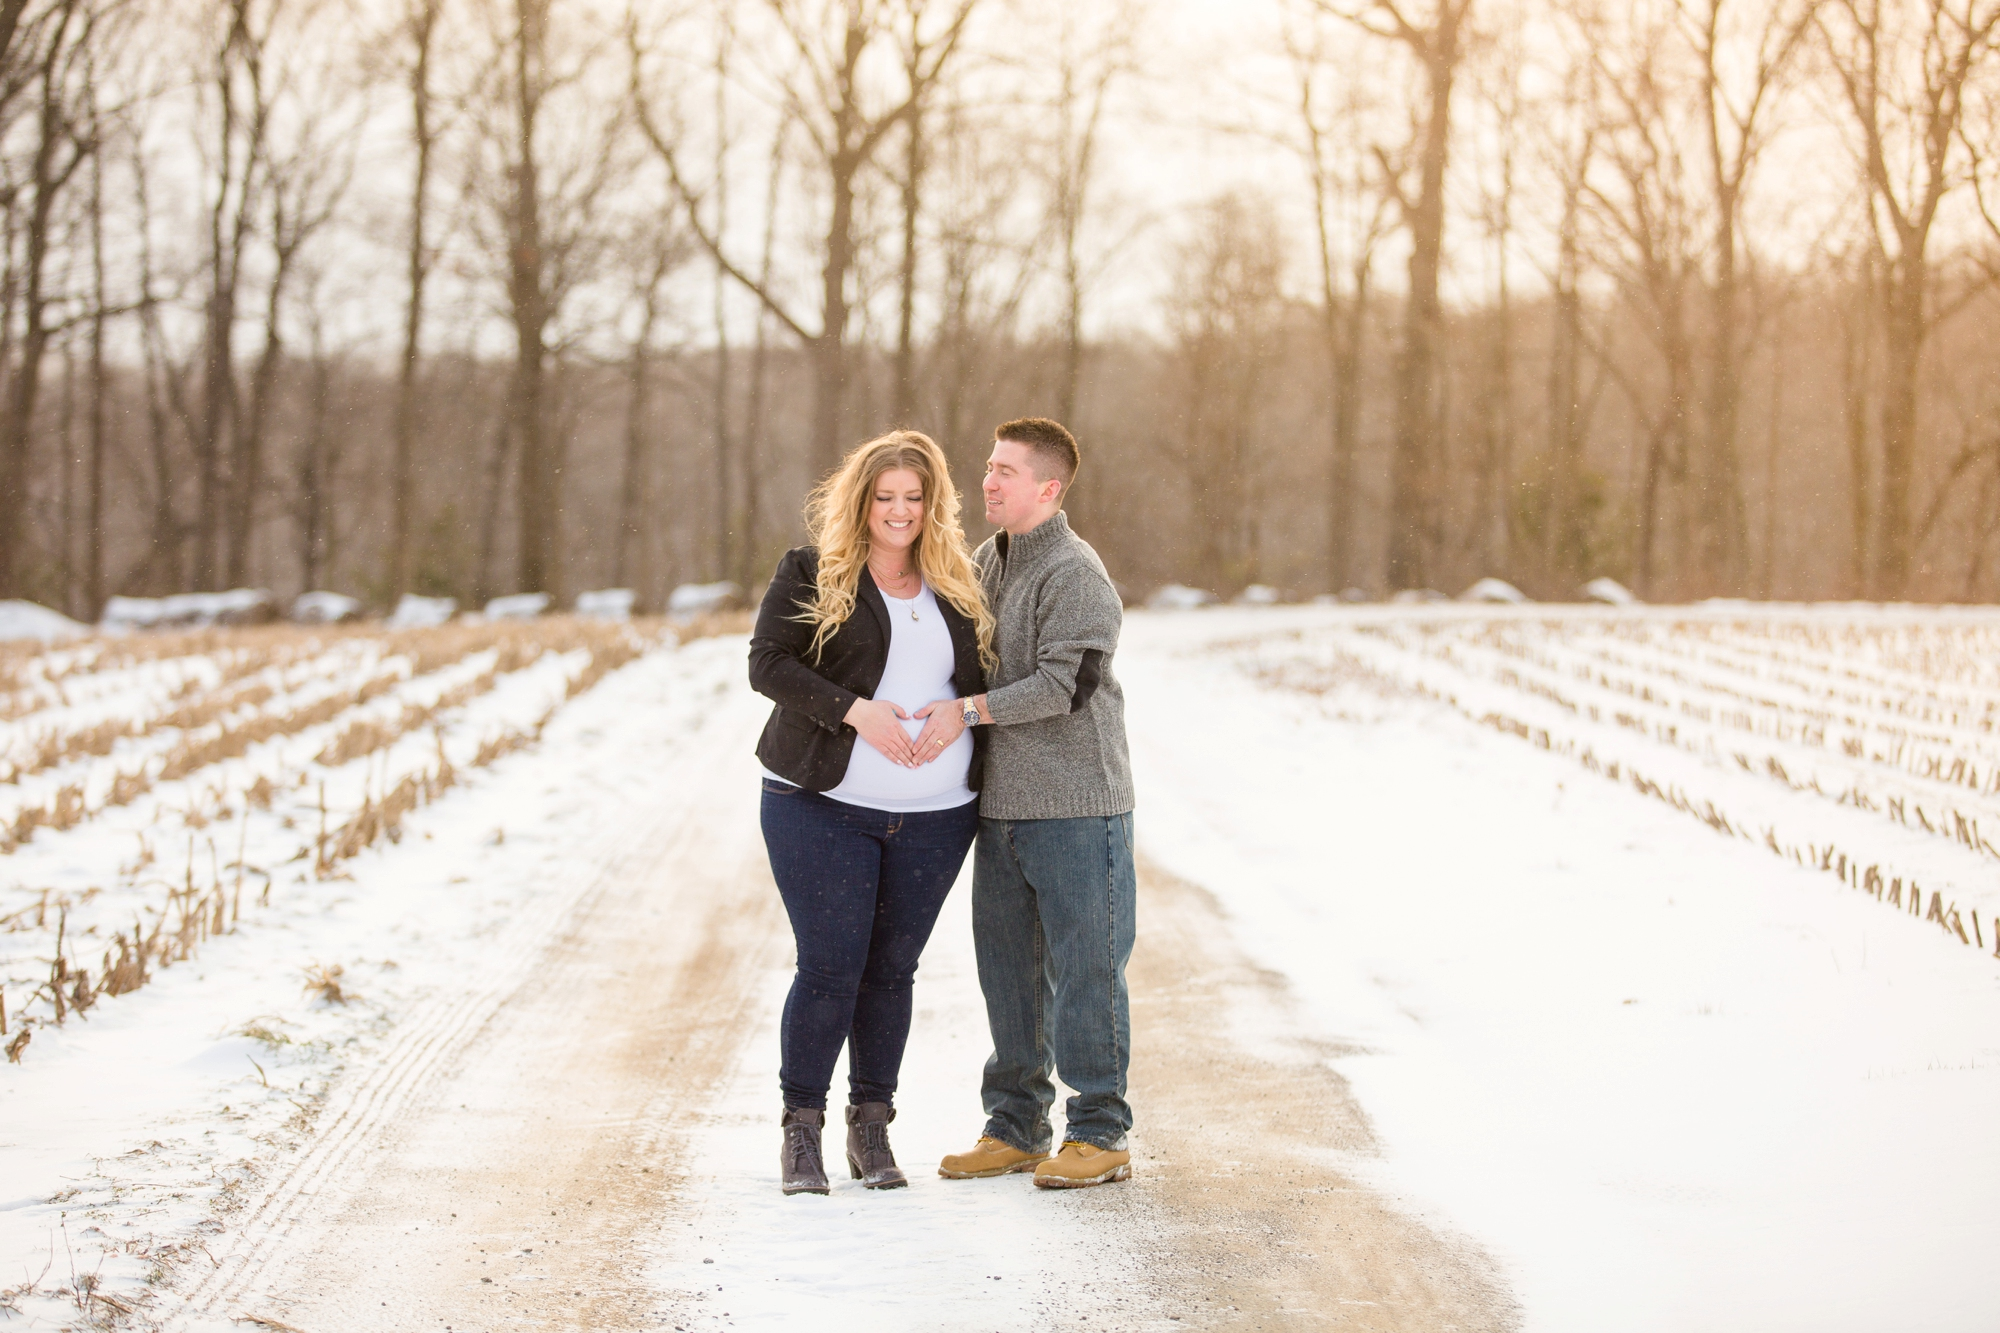 pittsburgh family photographer, cranberry township family photographer, wexford family photographer, zelienople family photographer